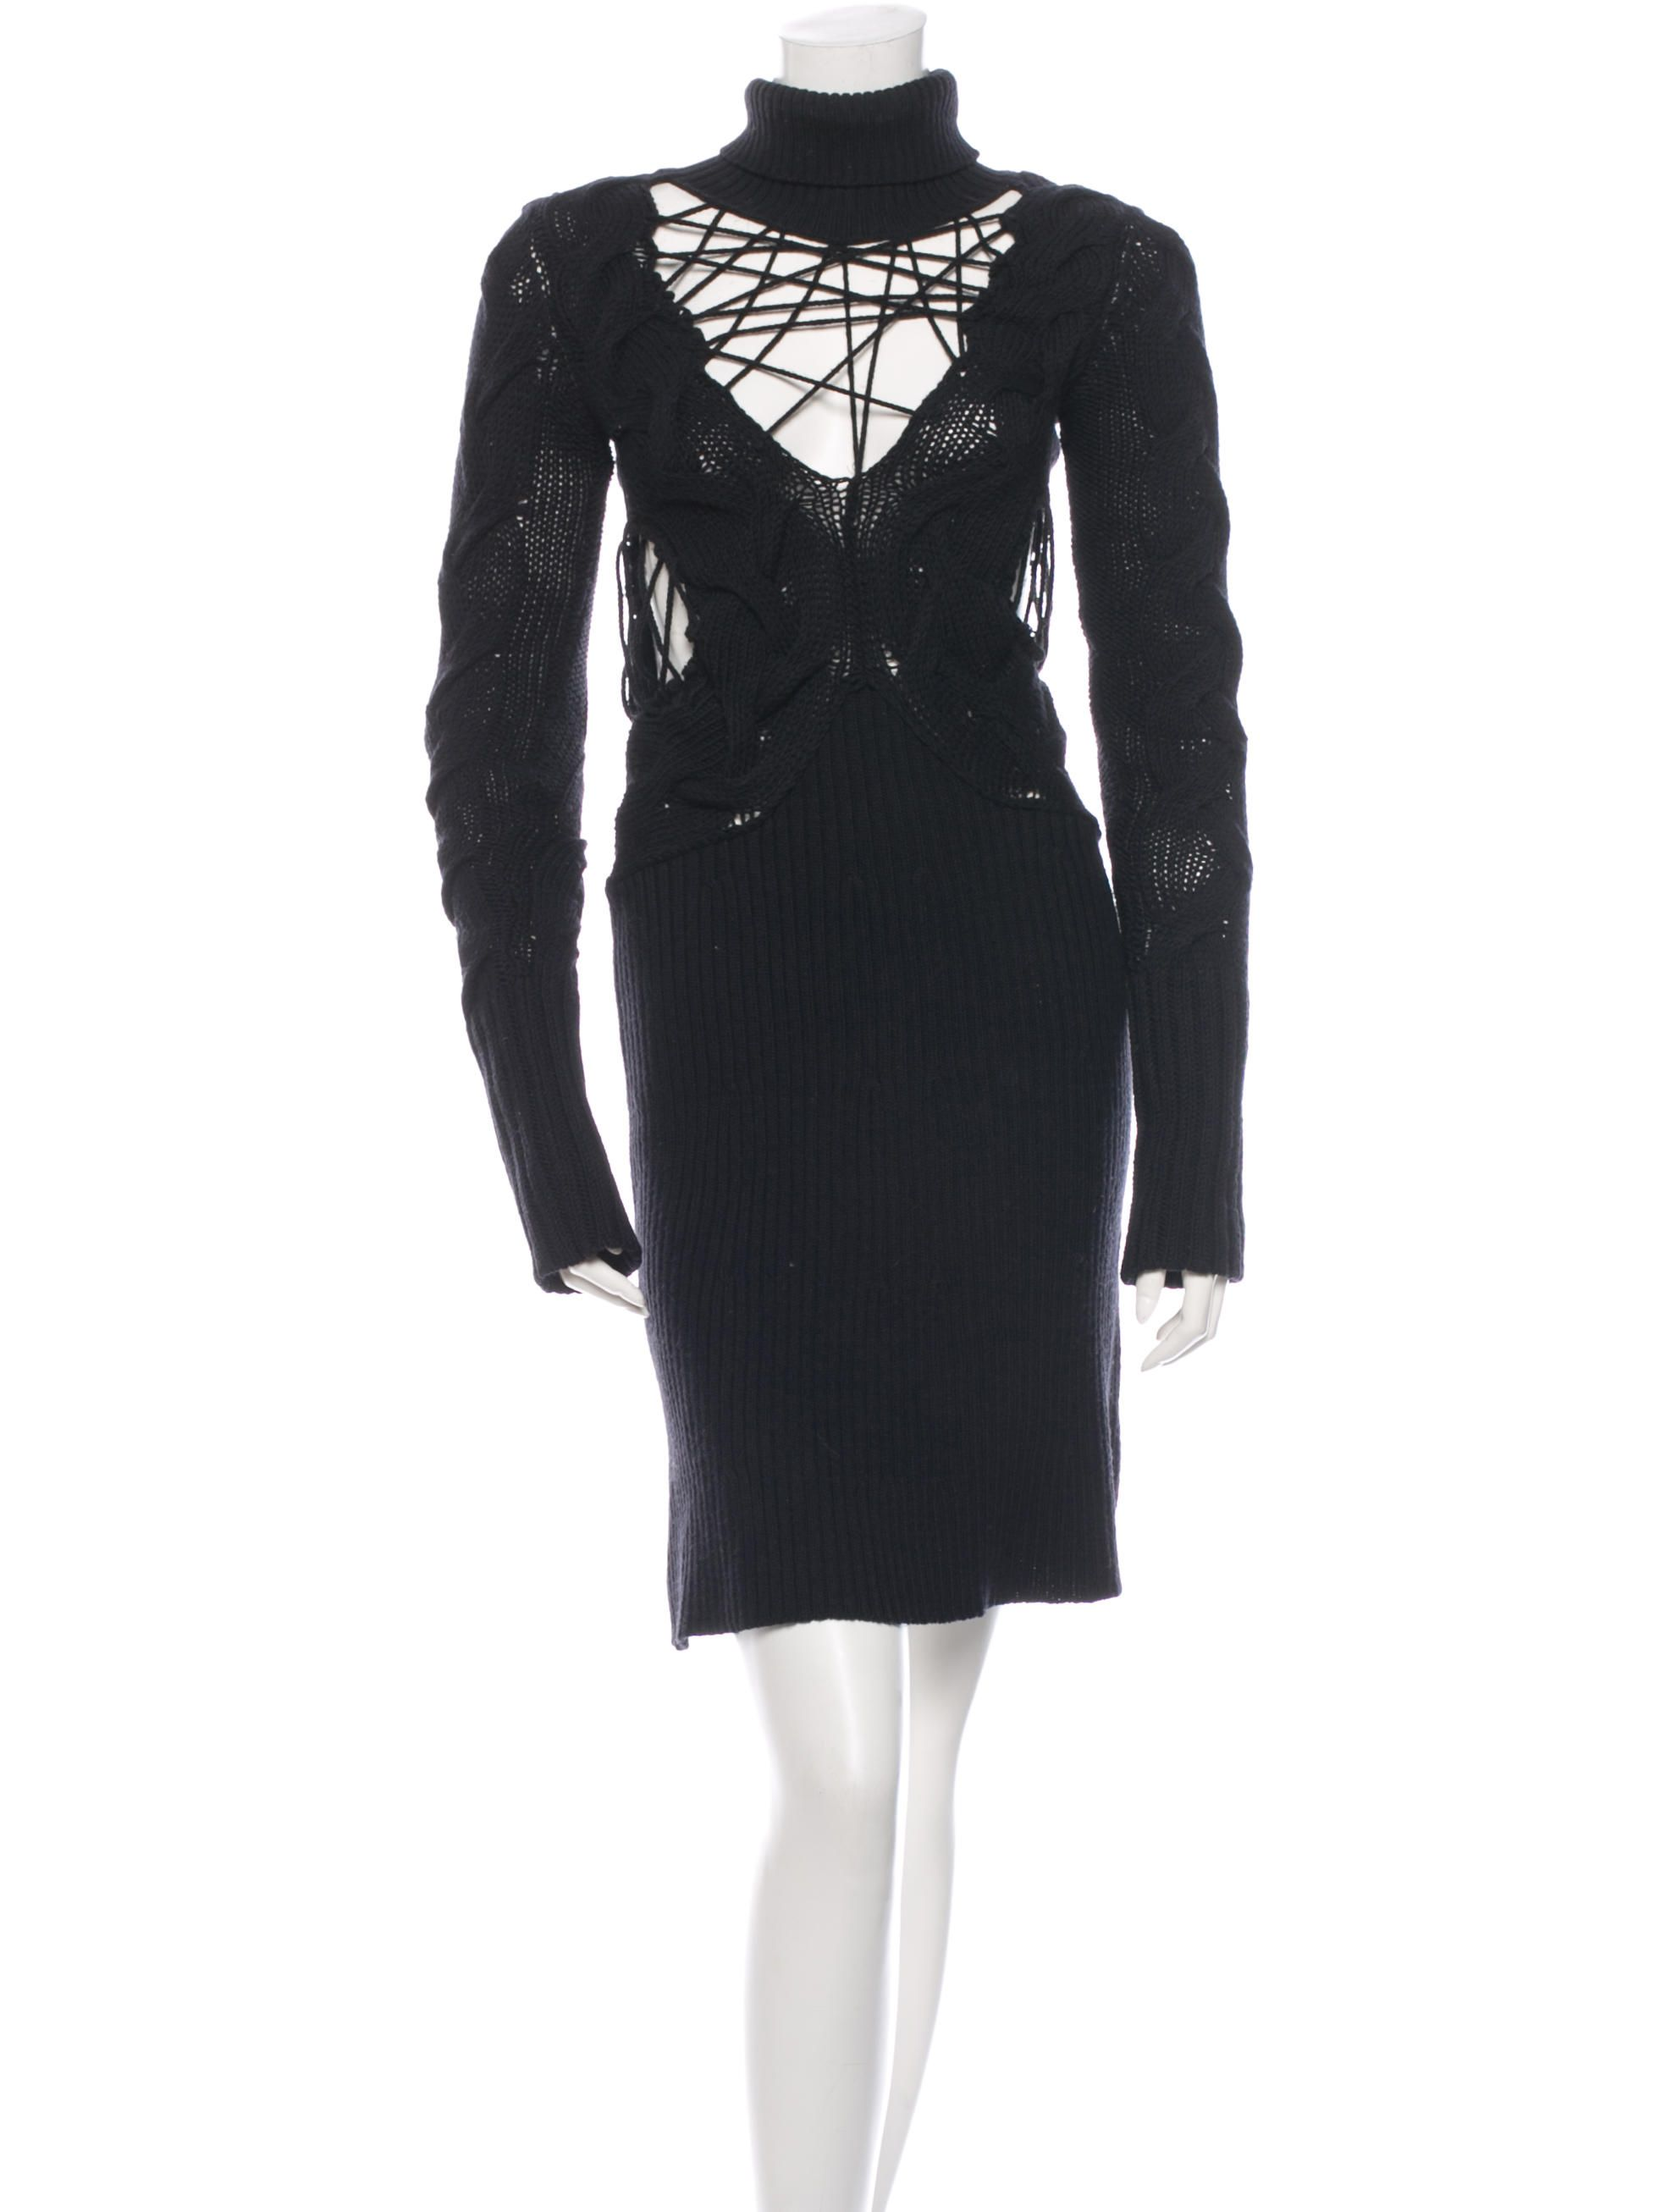 Black mcq by alexander mcqueen wool cable knit turtleneck dress with